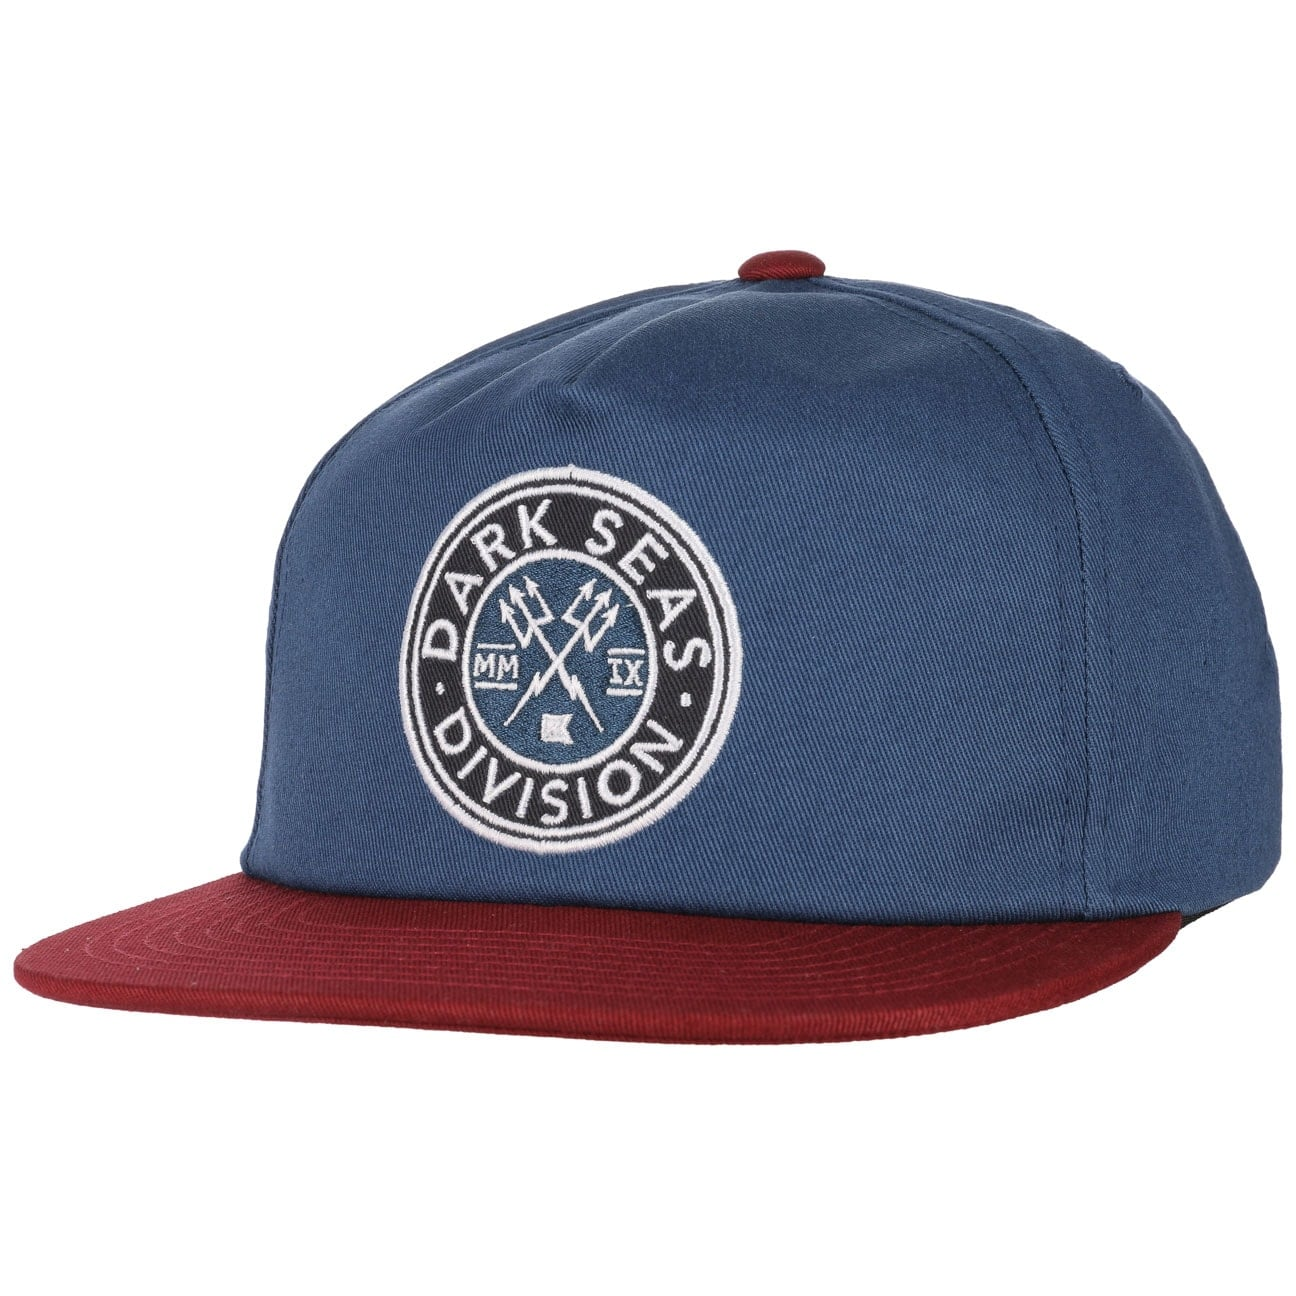 Casquette Journeyman Twotone by Dark Seas  baseball cap